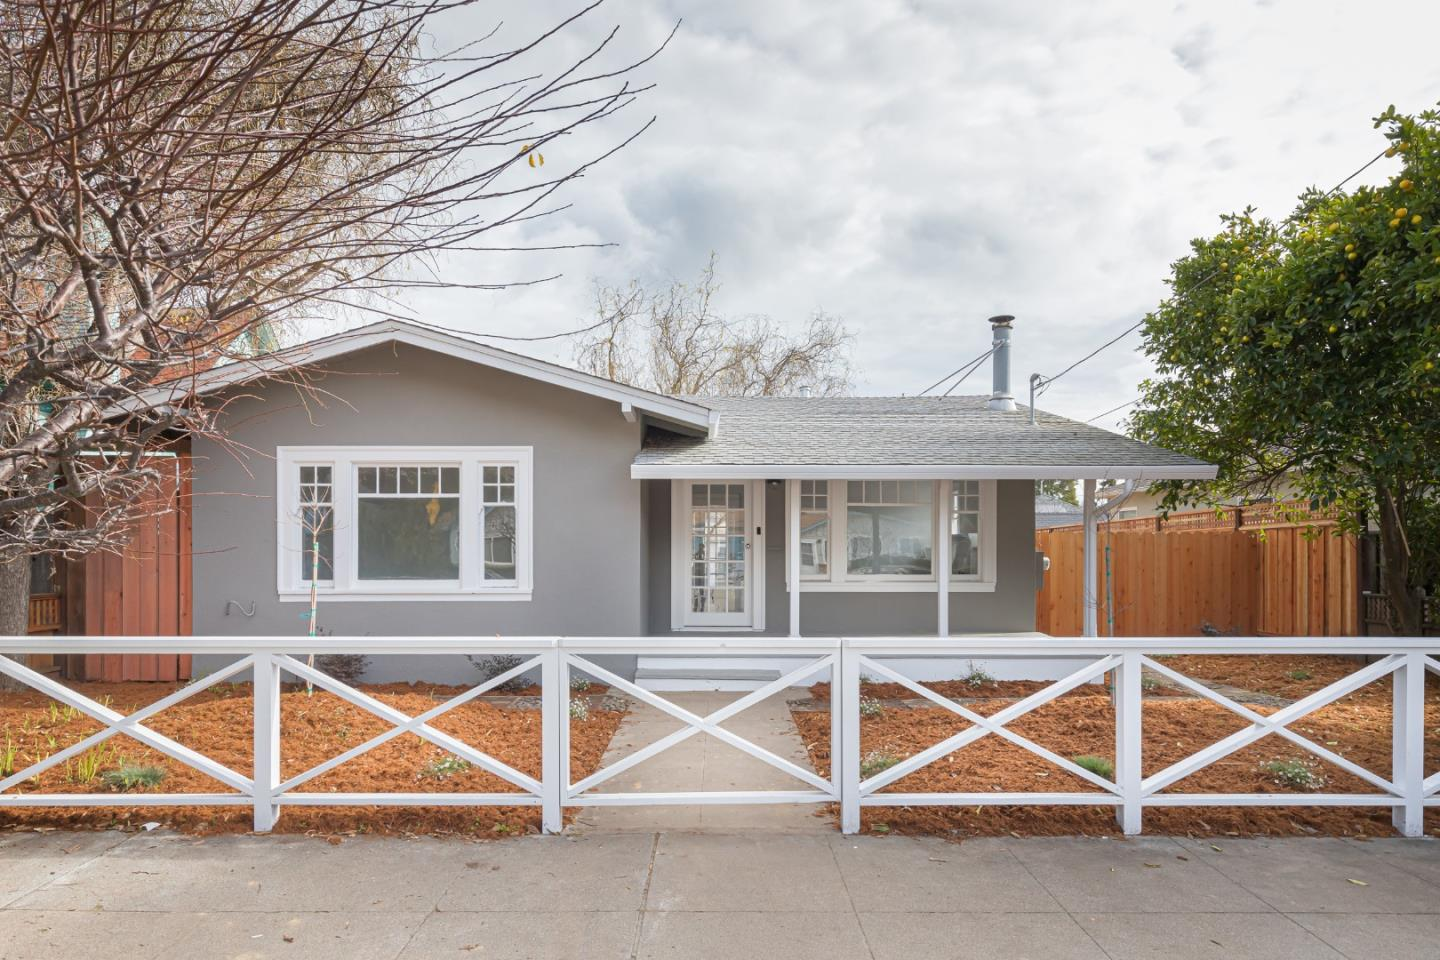 Fully remodeled 1928 Craftsman Style California Bungalow in desirable Seabright neighborhood close to the coast.This 2bedroom 1 BA single level home has a detached finished garage, newly refinished hardwood floors and fresh paint. The updated kitchen and bathroom pair modern materials with vintage styling to compliment the homes original design. Classic Bungalow front room includes wood stove surrounded with built in cabinets leading into a bright kitchen and dining room; which opens onto the large deck and the sunny backyard. Outside the house is surrounded with all new landscaping, fencing and decking. Established trees combined with new plantings, new ground cover and new foot paths in the back yard are just waiting for your personal touches. With room for a hot tub and more. Perfectly finished with exposed wood rafters and vintage light fixture, you just need to add a glider and a pitcher of lemonade. . . this turnkey beach bungalow is perfect for anyone.